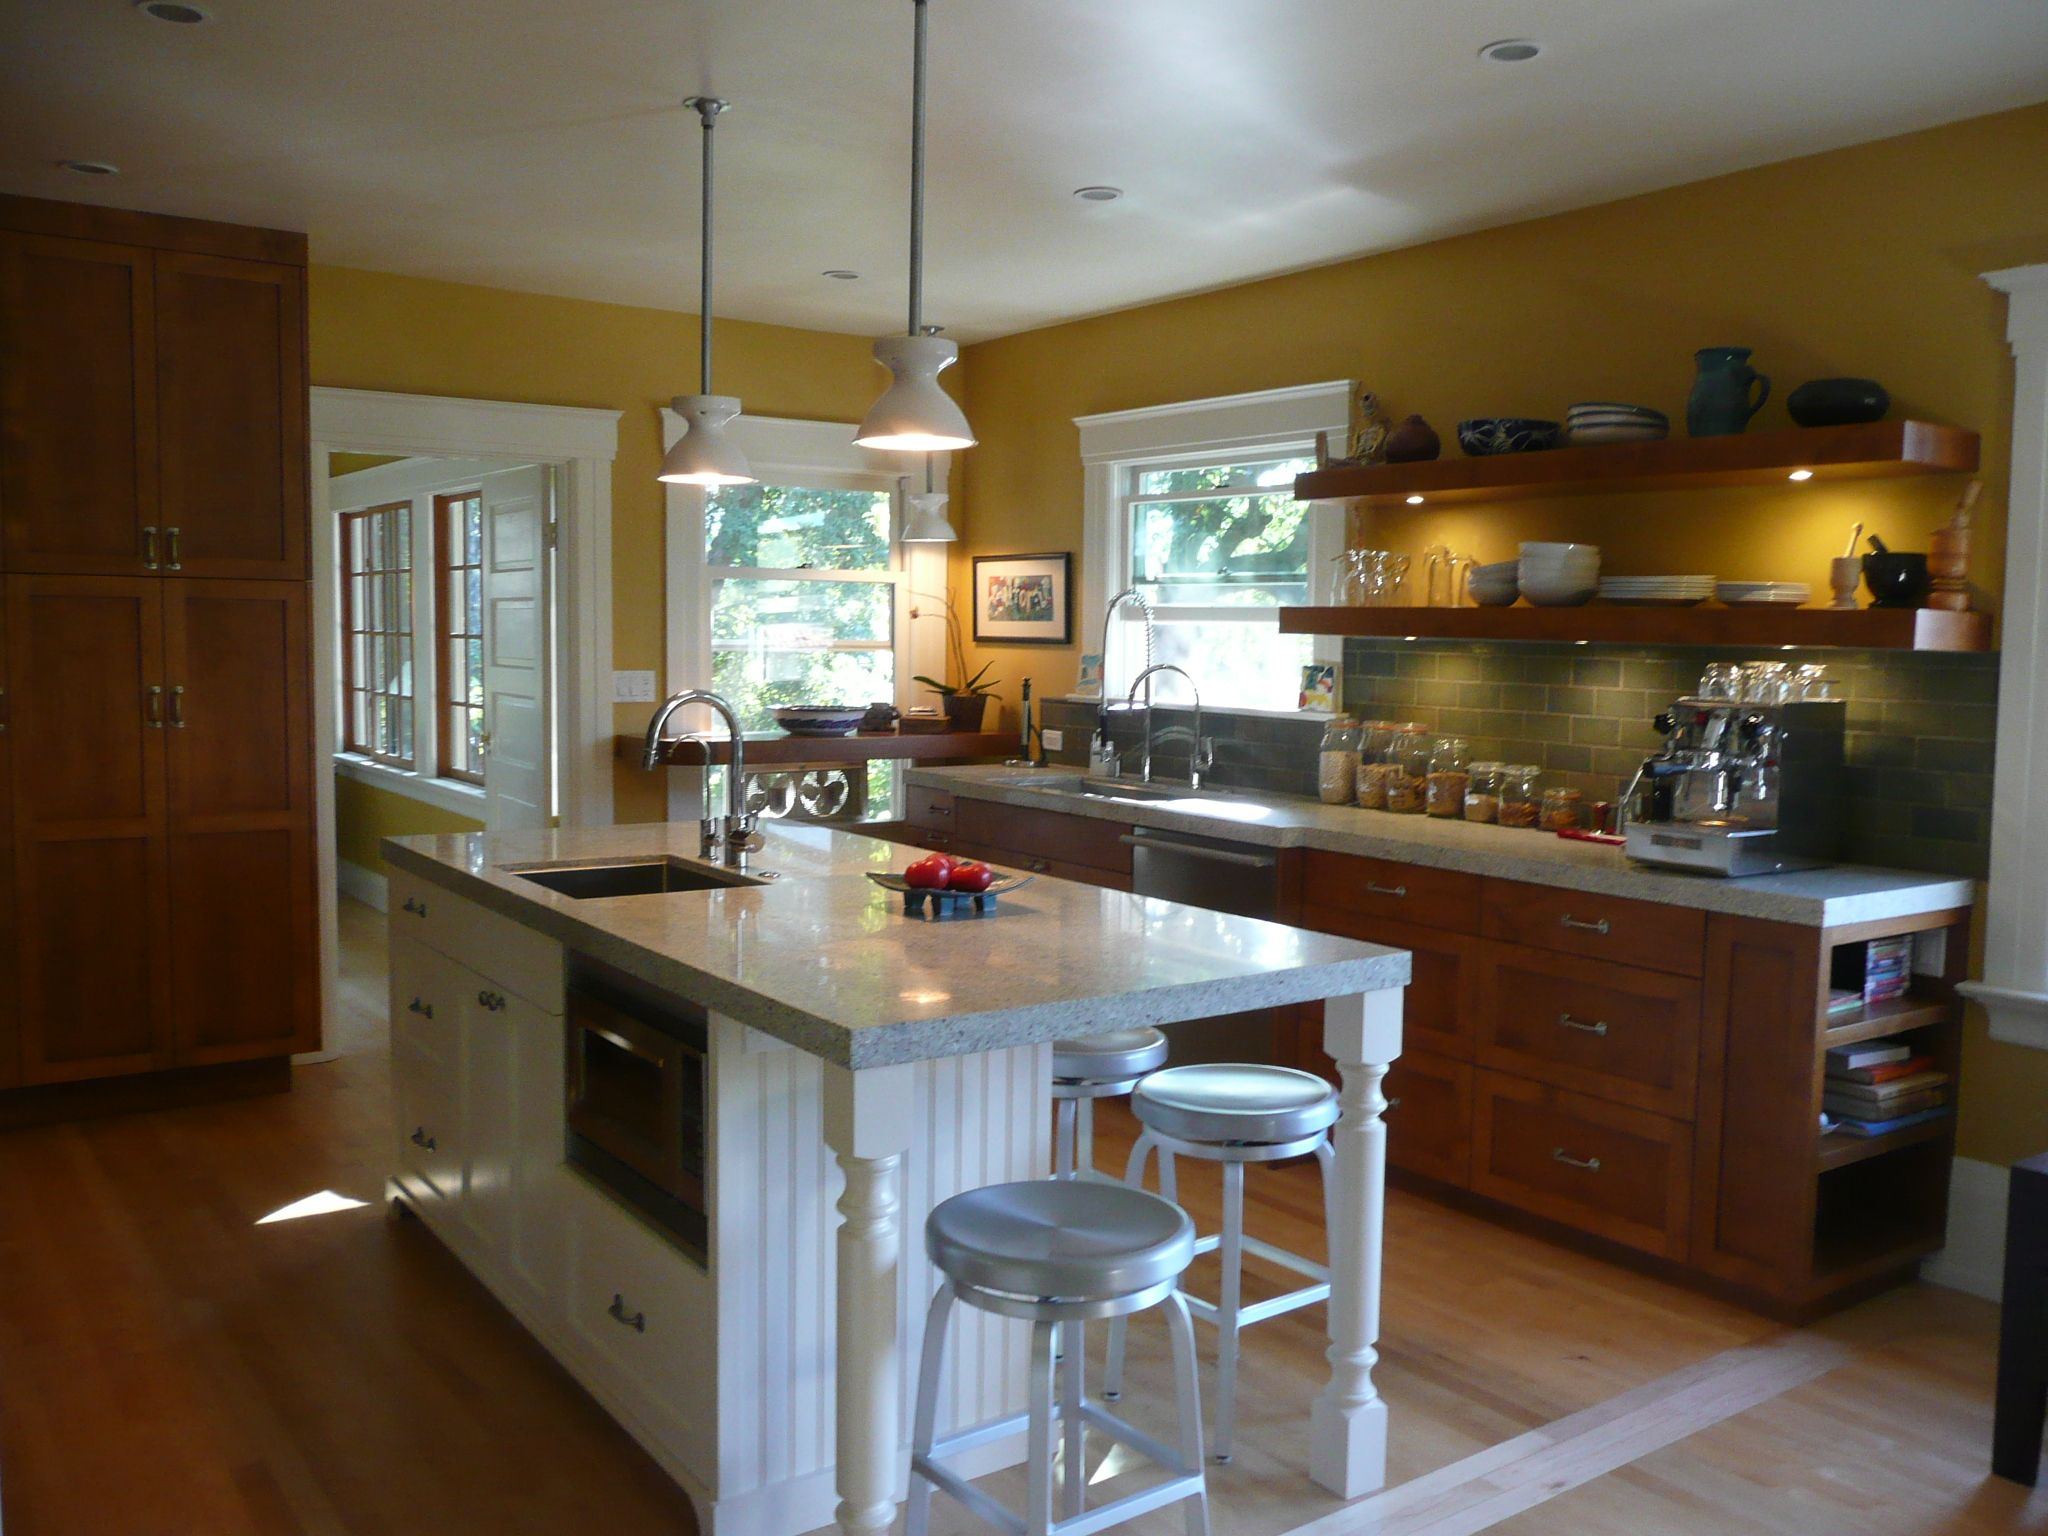 Contemporary Kitchen By Canyon Design Build Oakland Ca